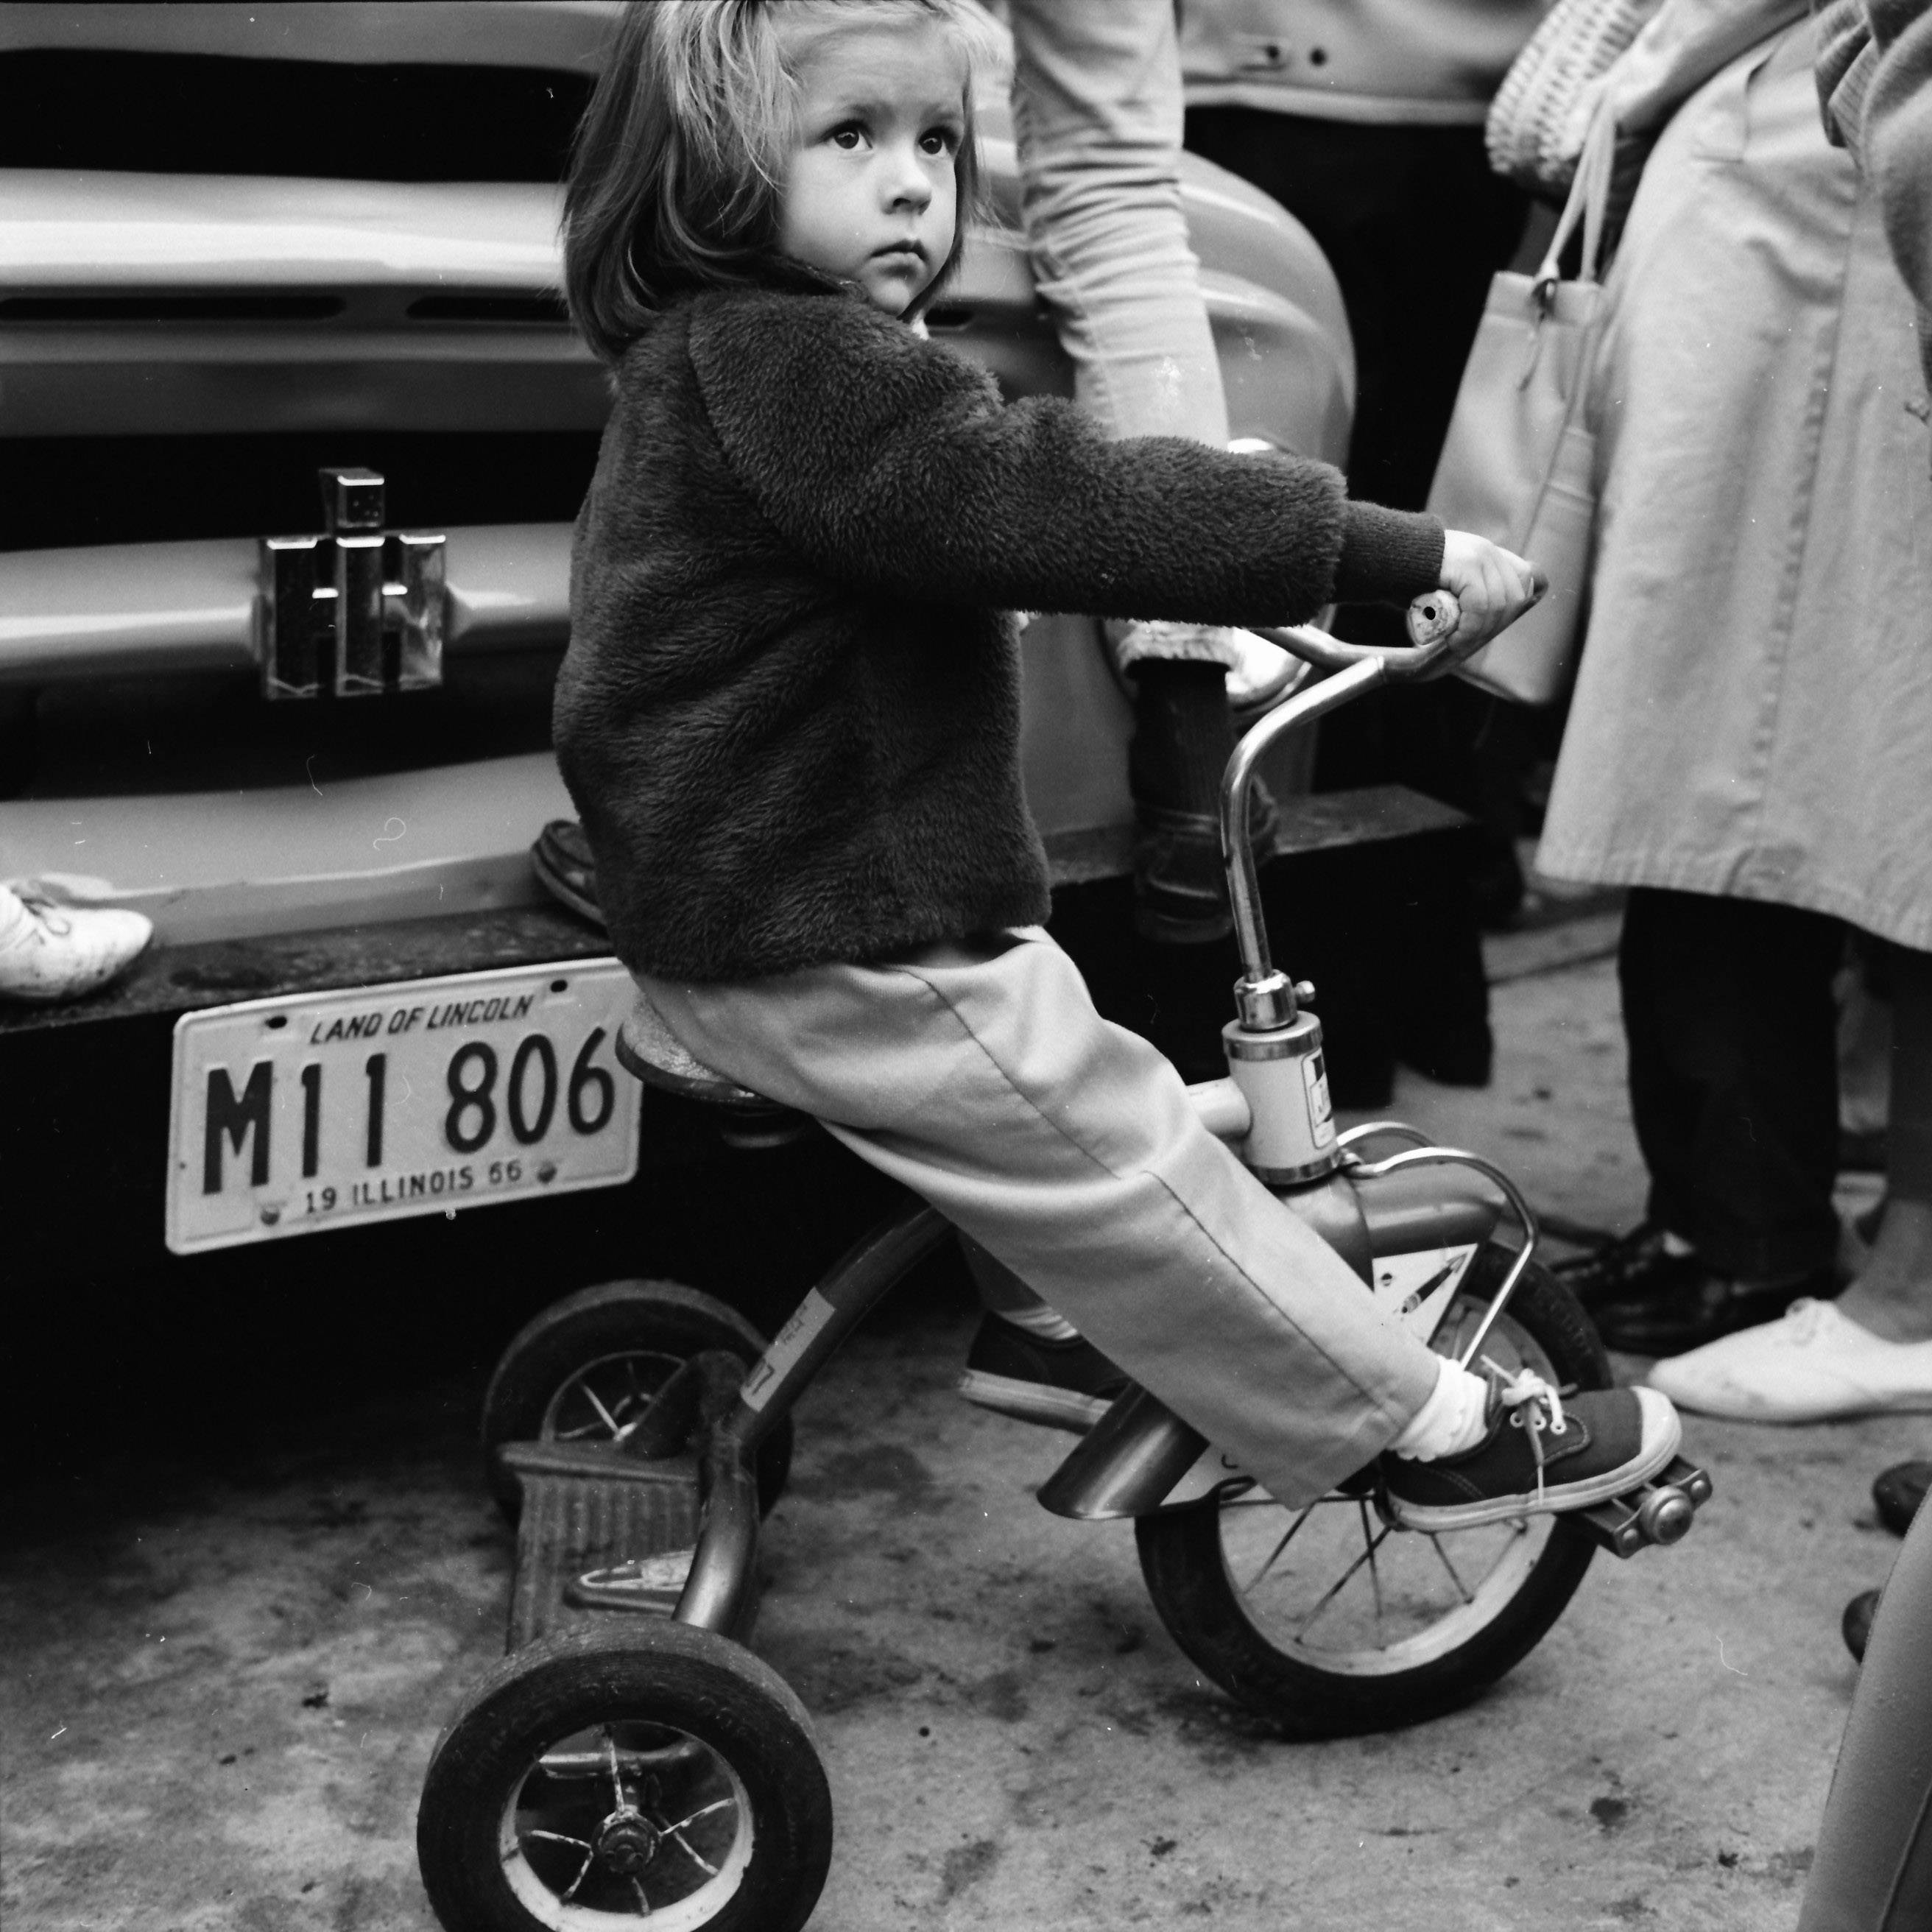 A child tries out a tricycle during a bicycle auction in Mount Prospect.